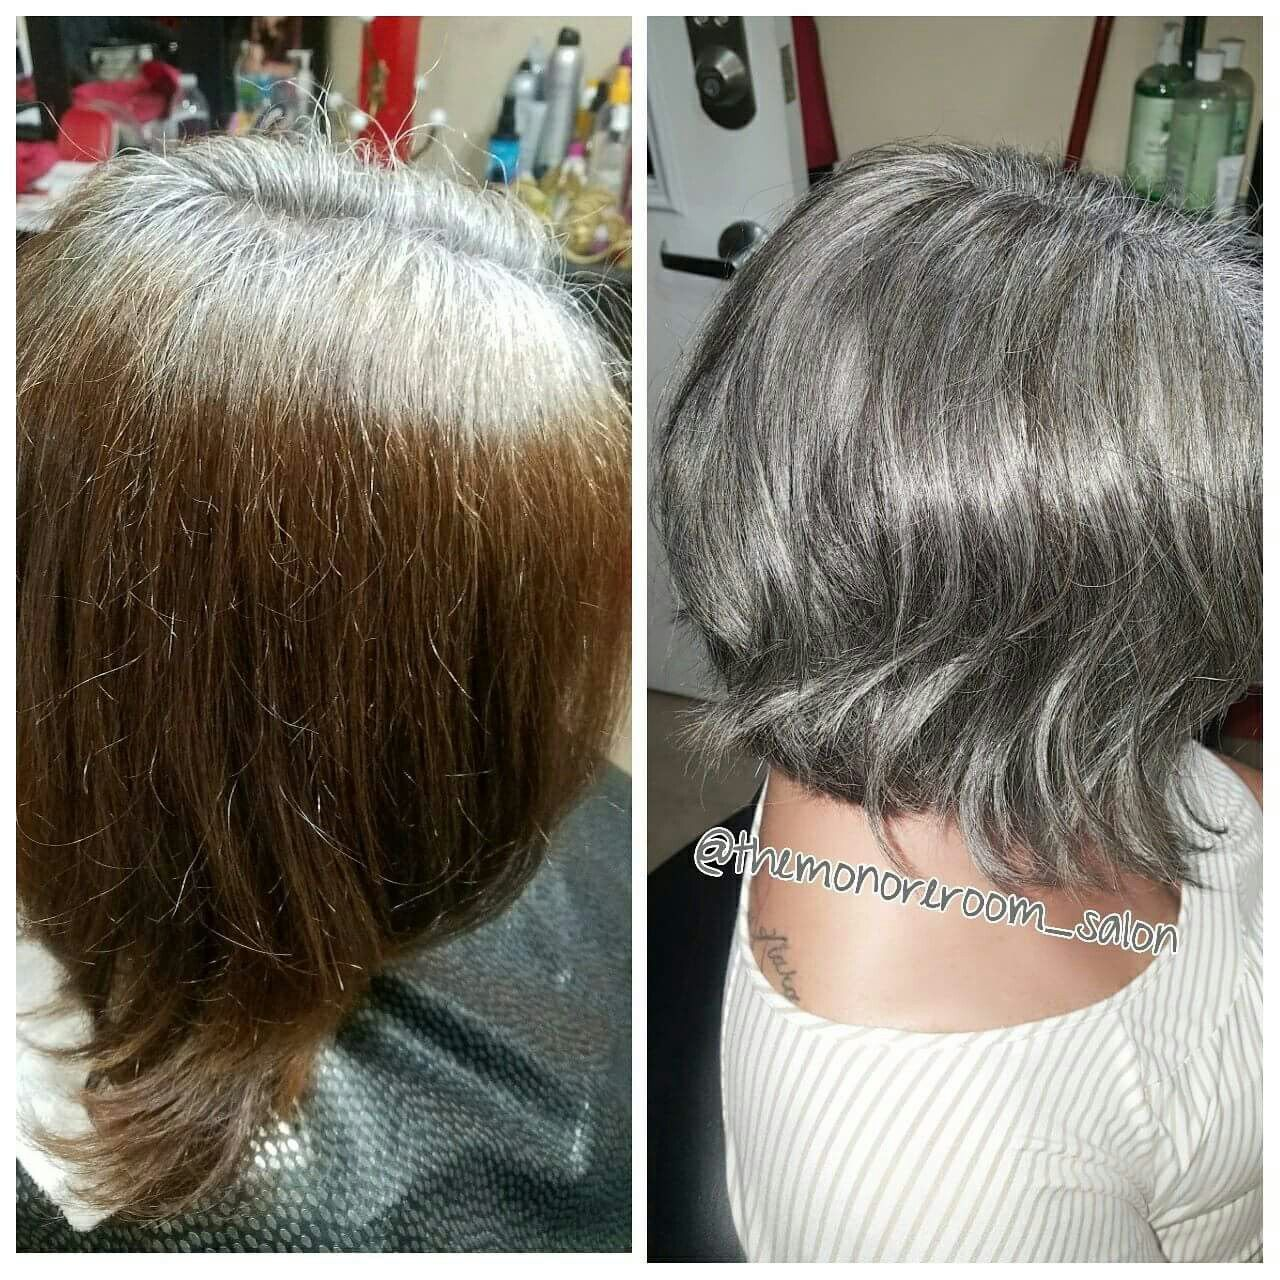 This Is When I First Started Growing Out My Natural Hair Color I Like The Gray But So Far My Hair Doesn Hair Color Natural Hair Styles Natural Hair Color